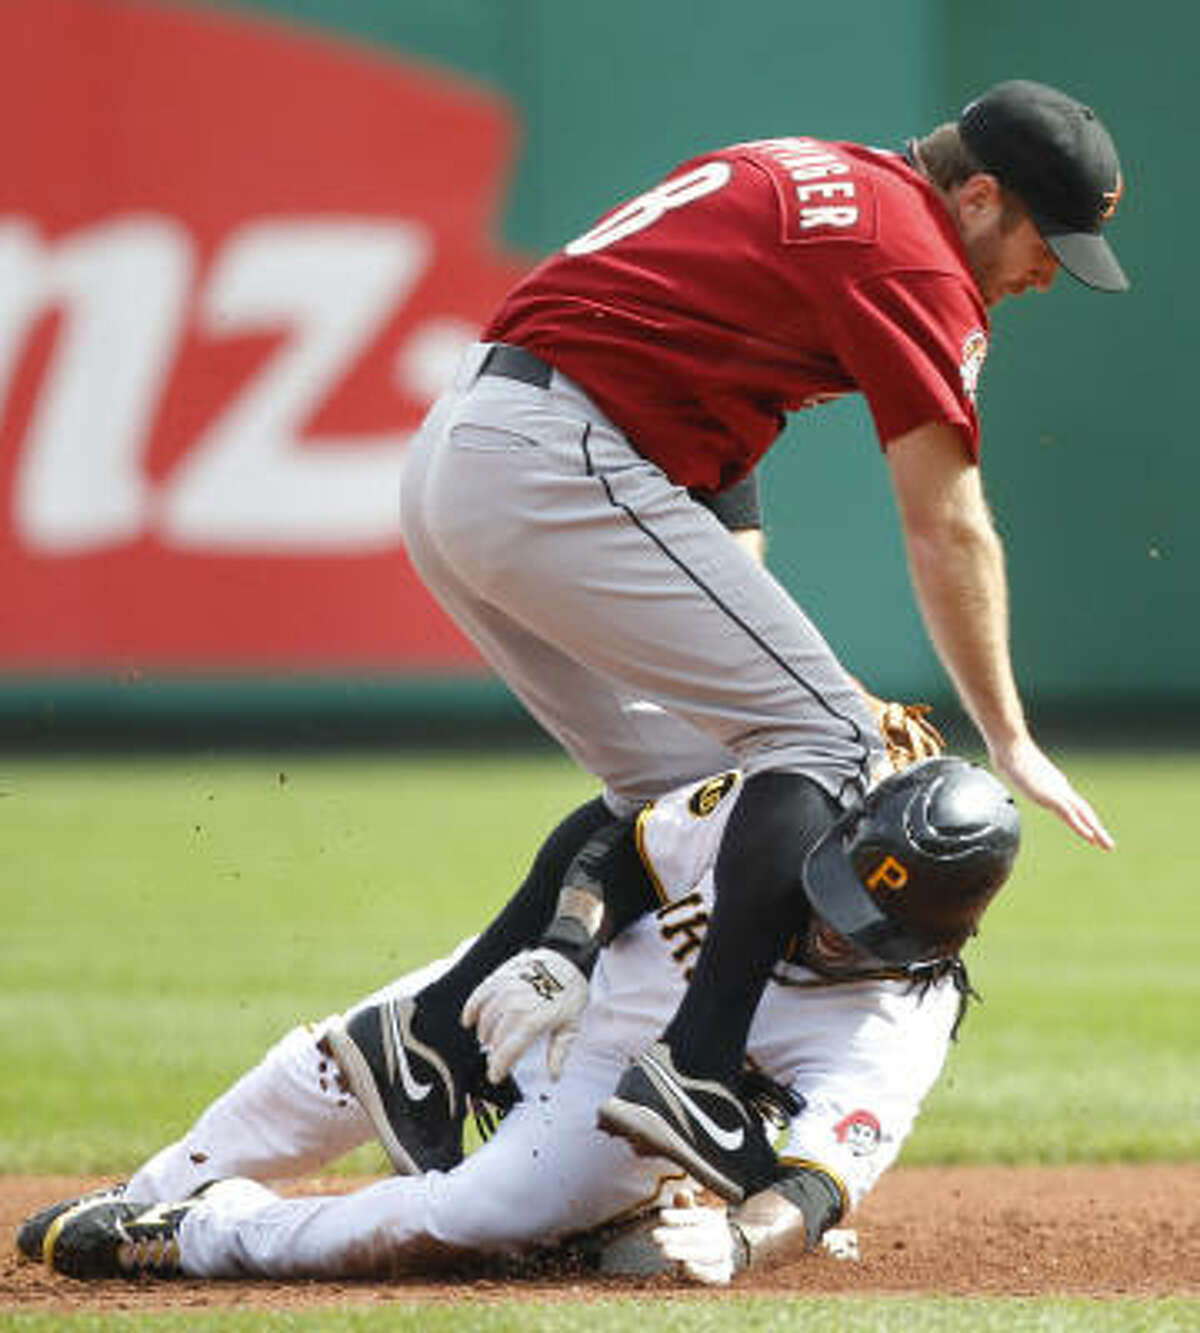 The Pirates' Andrew McCutchen, bottom, slides into Astros second baseman Jeff Keppinger as he is forced out on a ground ball by Jose Tabata in the first inning.